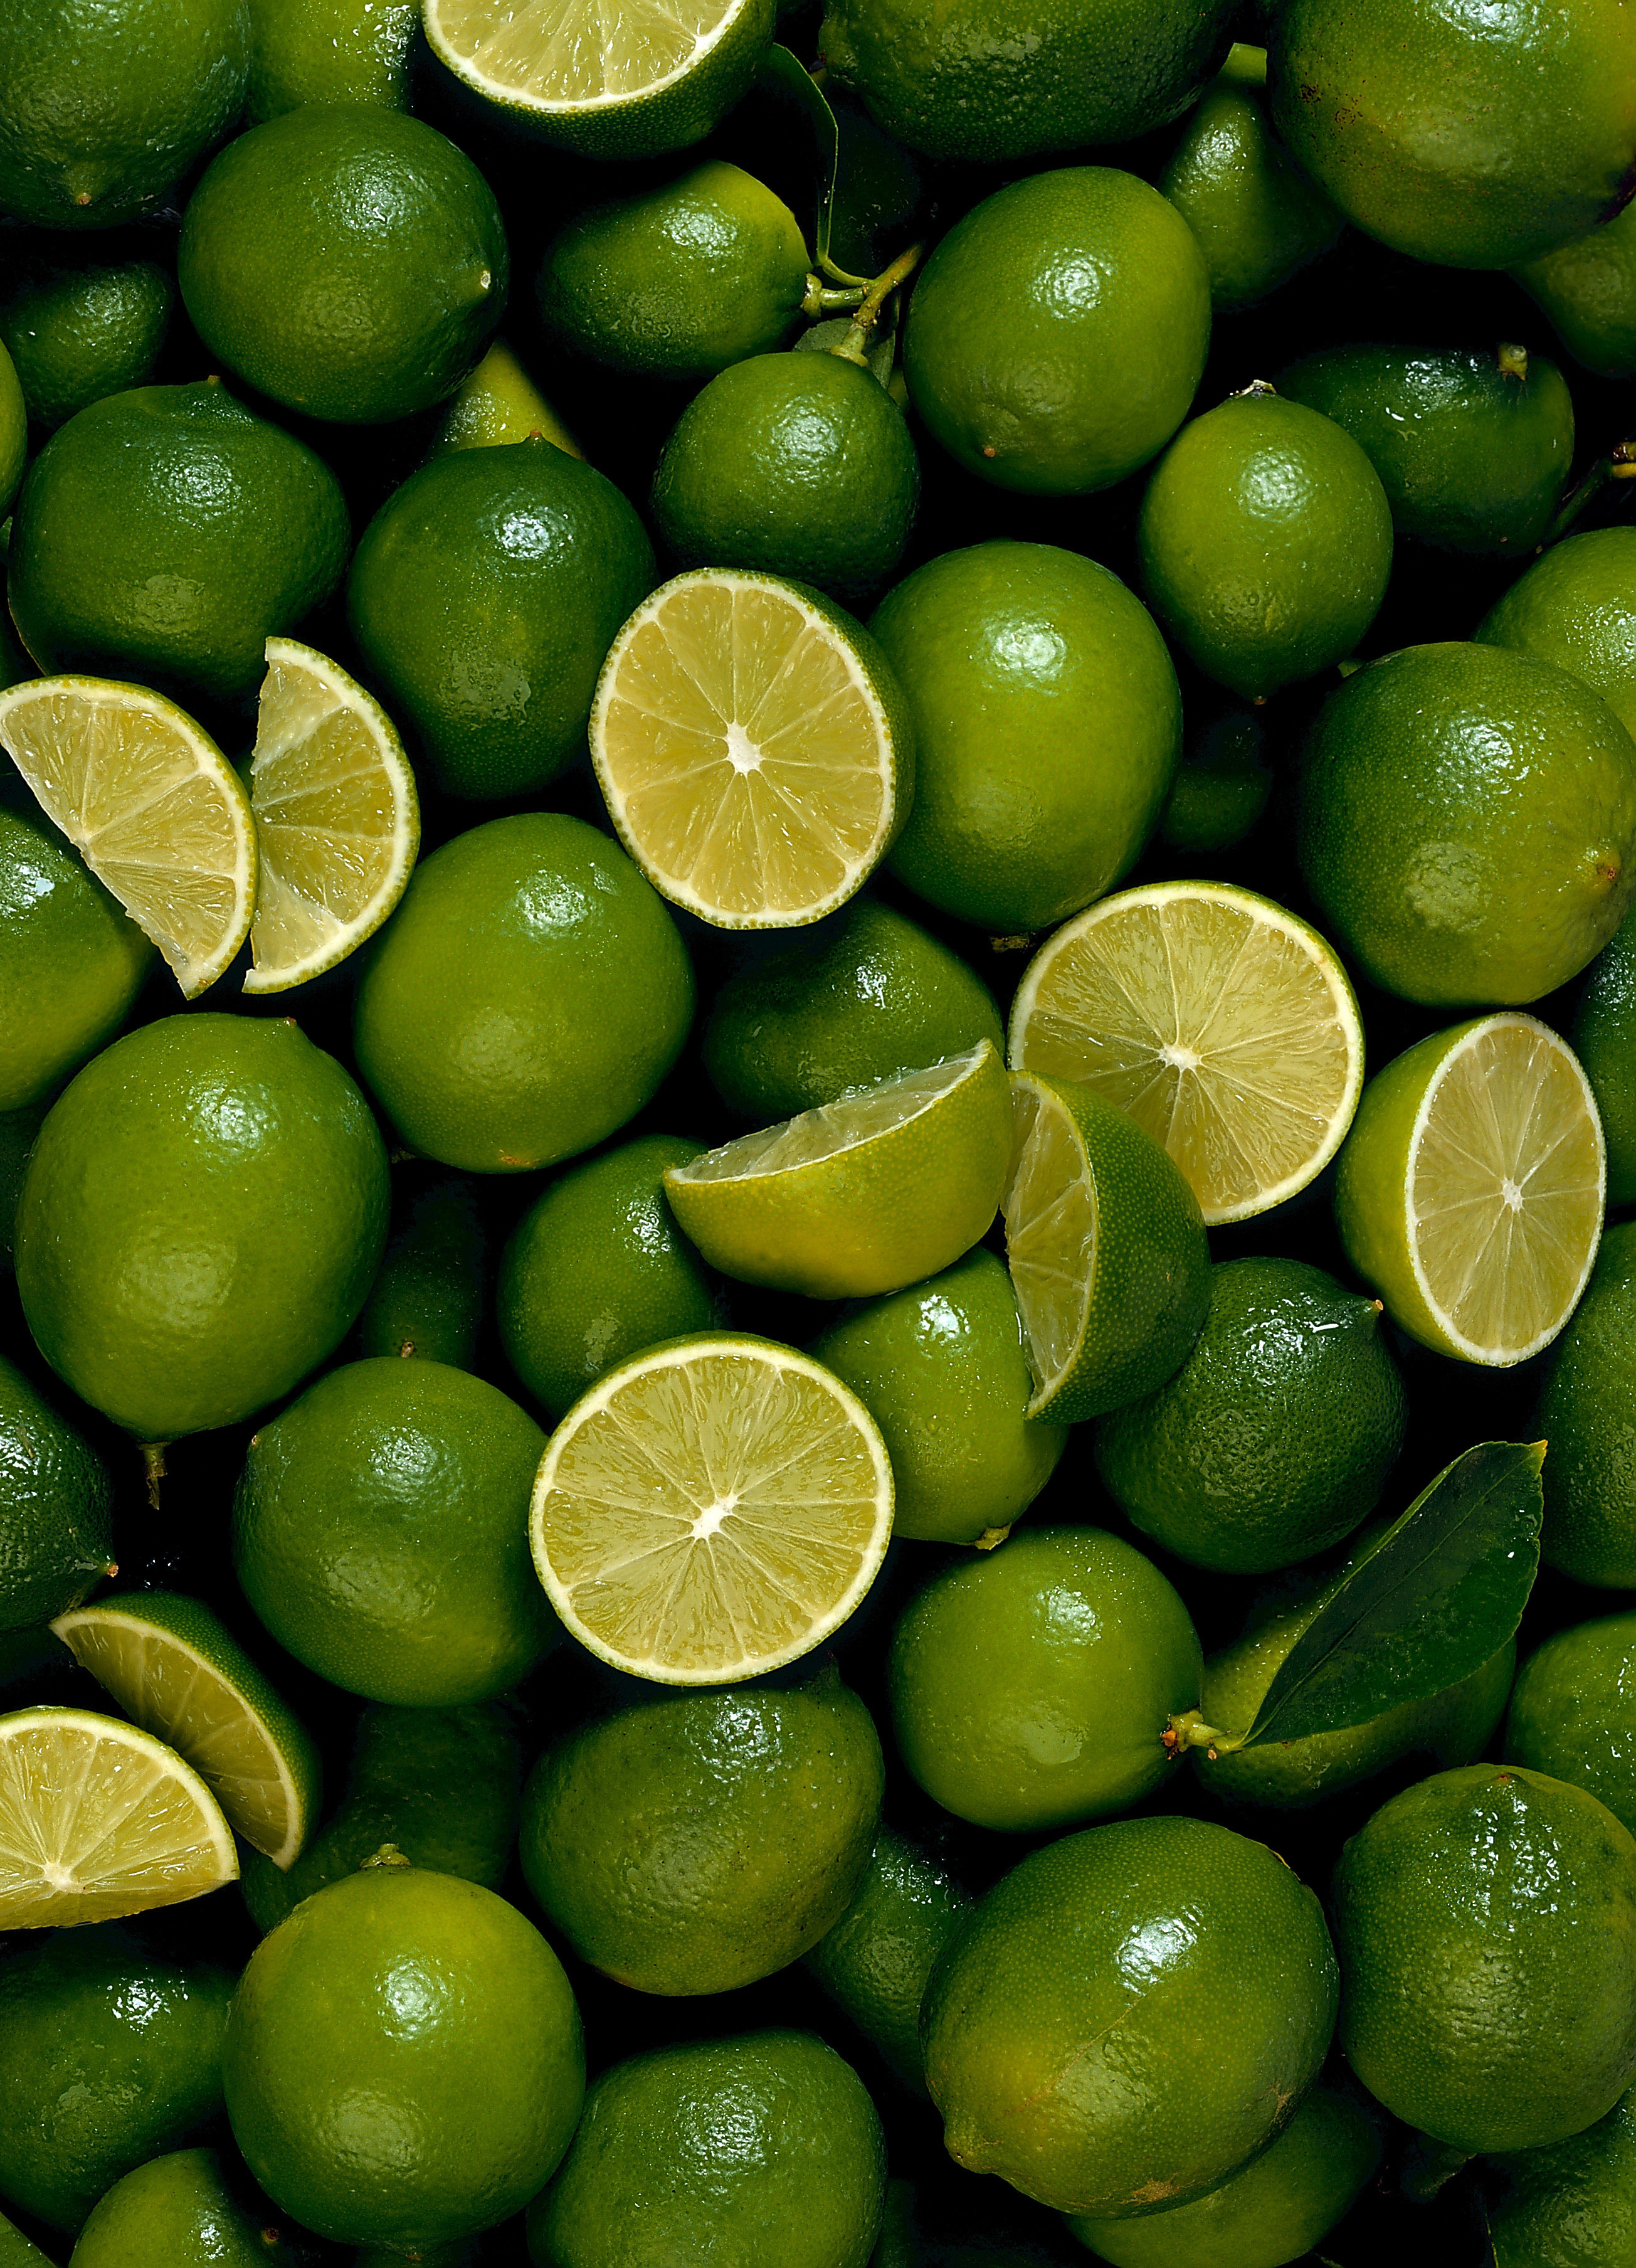 Green fruits food limes HD Wallpaper